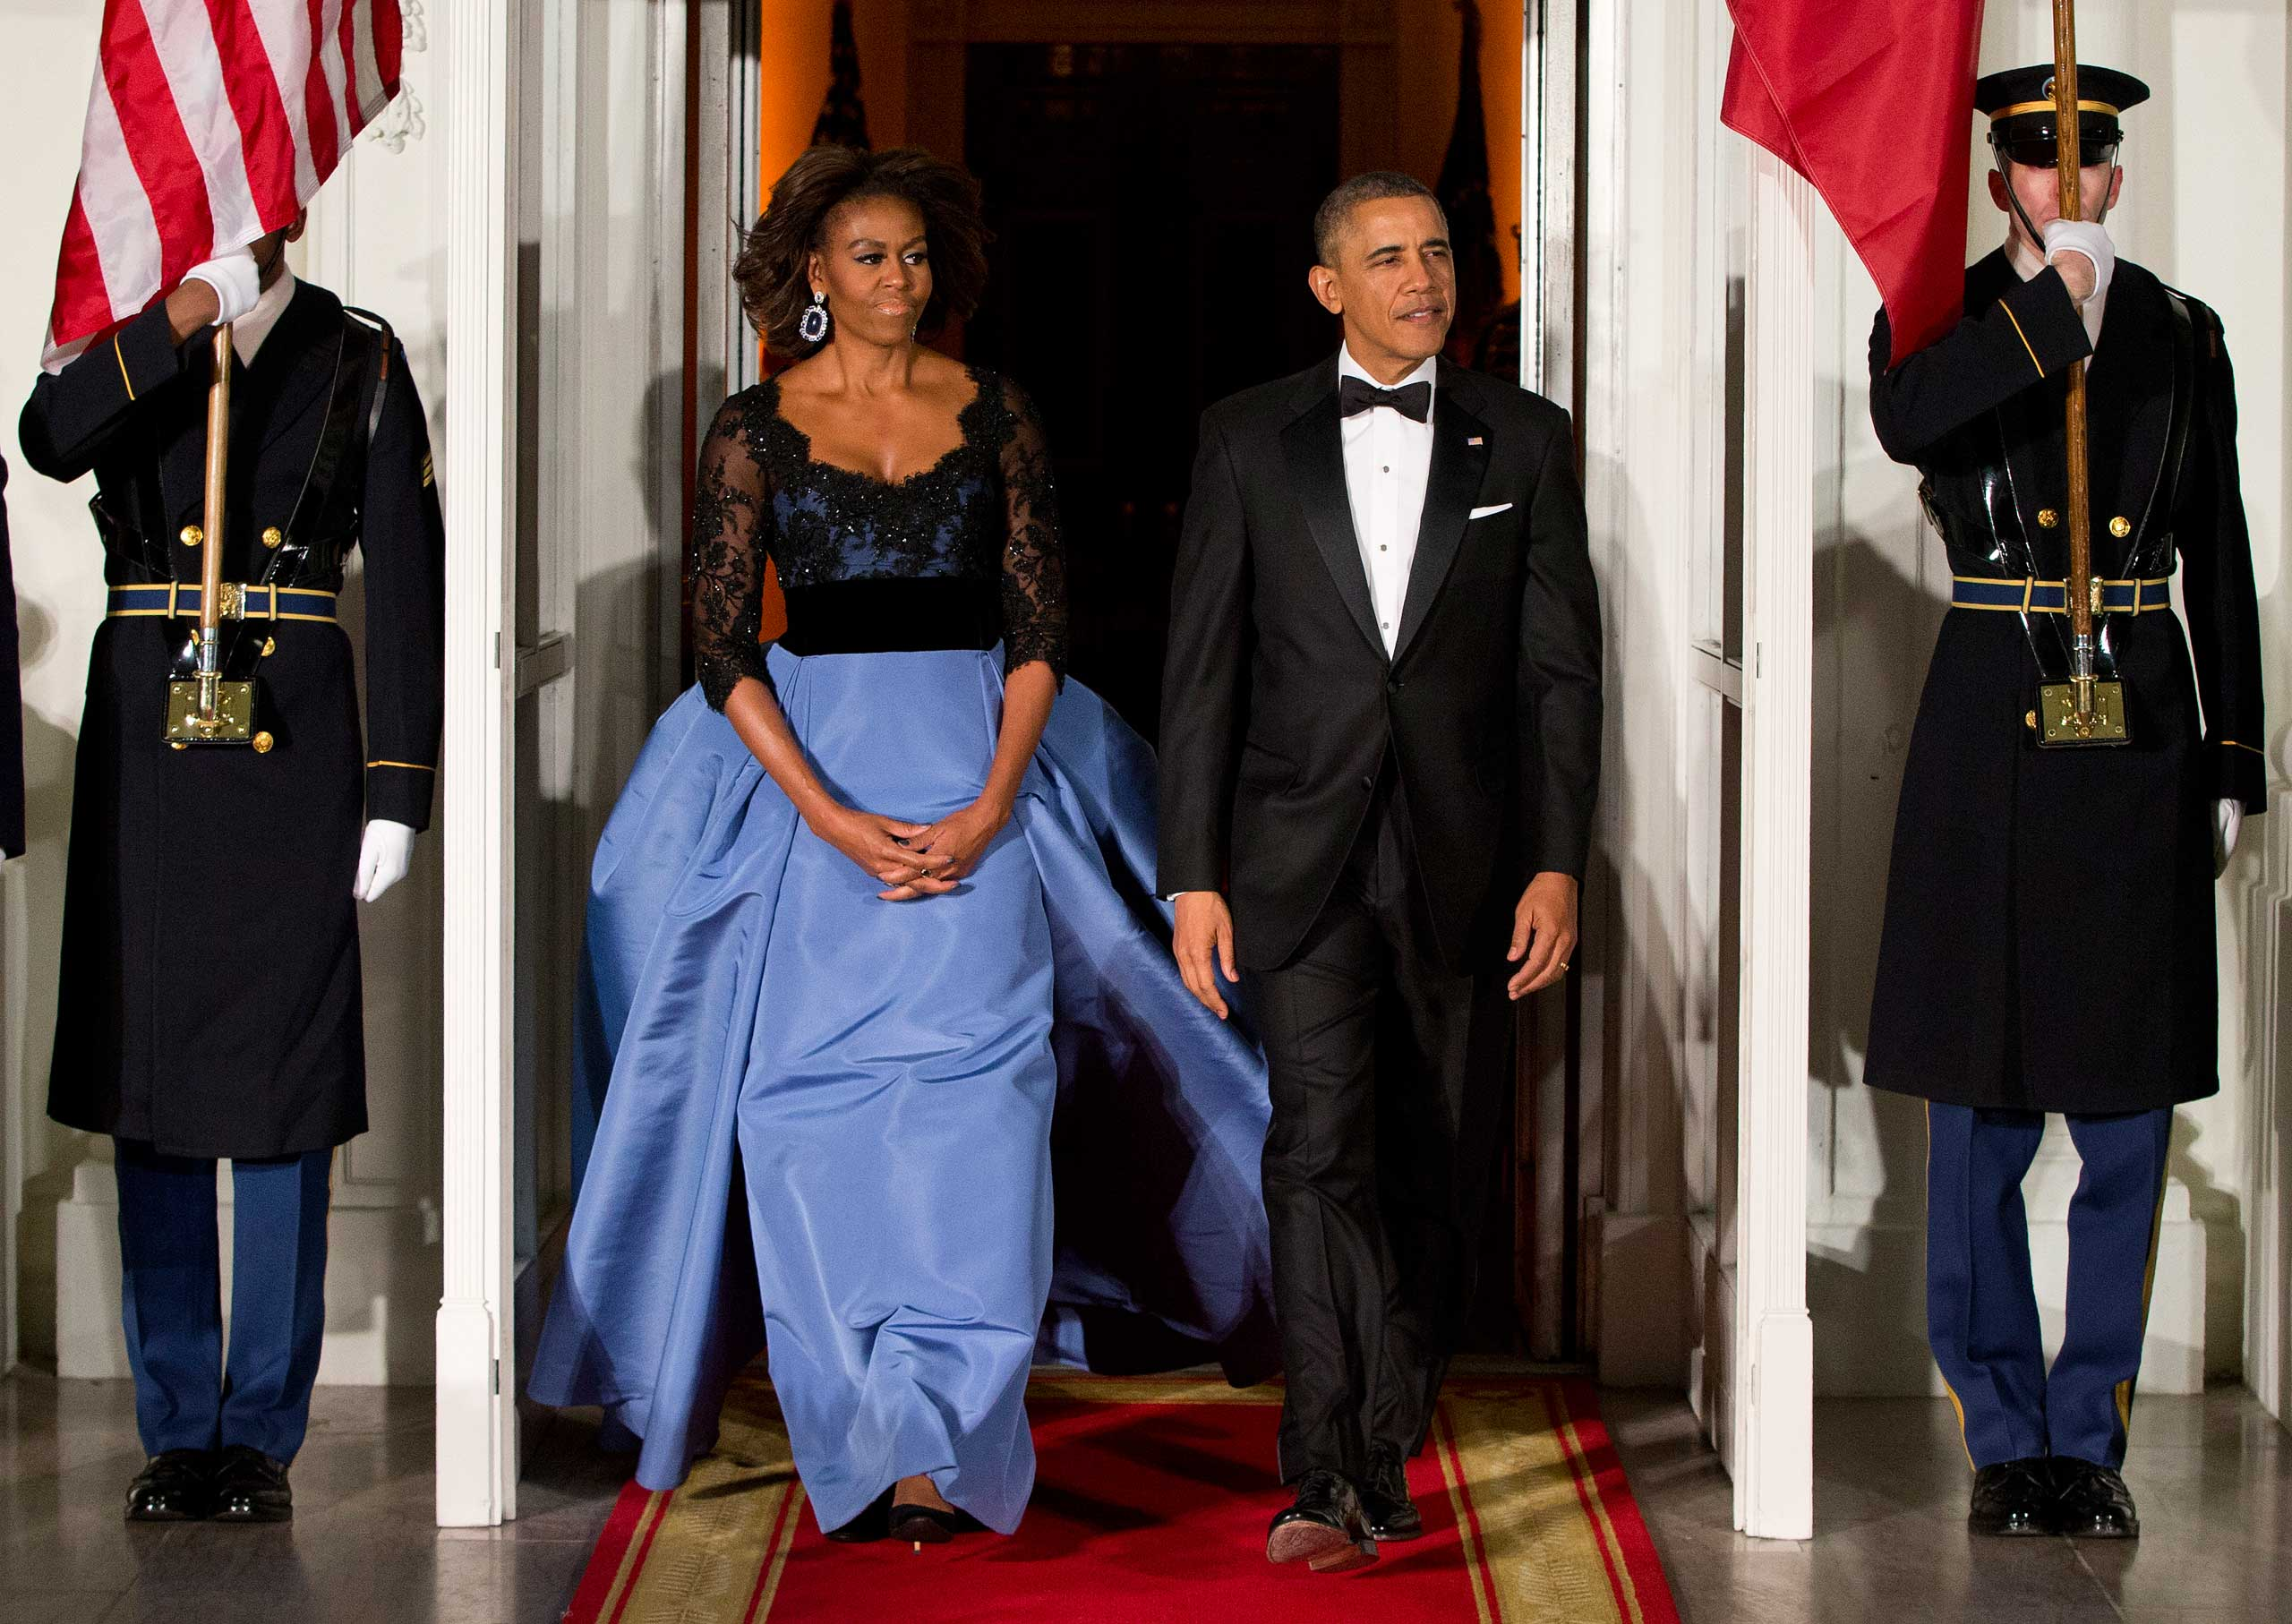 Obama won plaudits for this powder blue and black lace gown by Carolina Herrera, which she wore to a state dinner with Hollande in February.